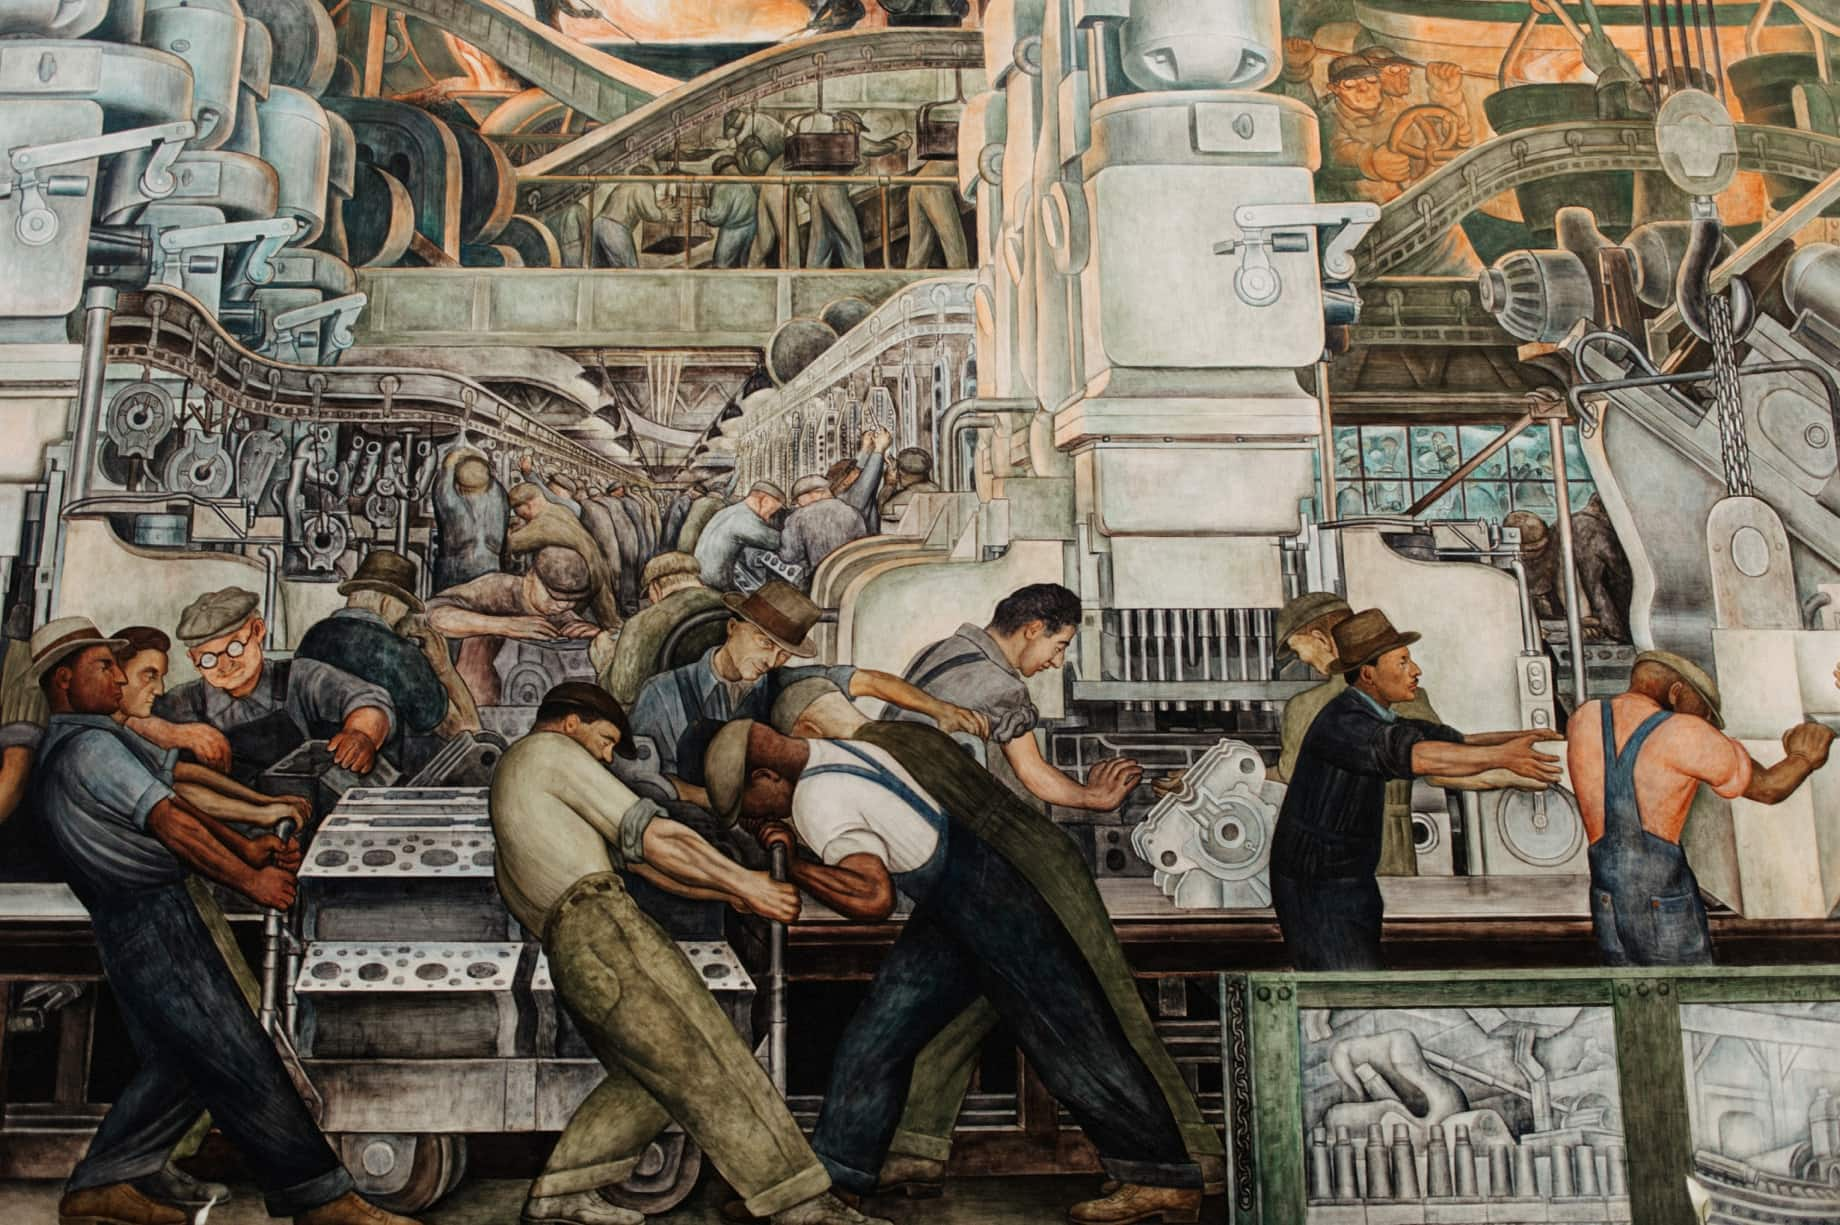 diego rivera court at the DIA